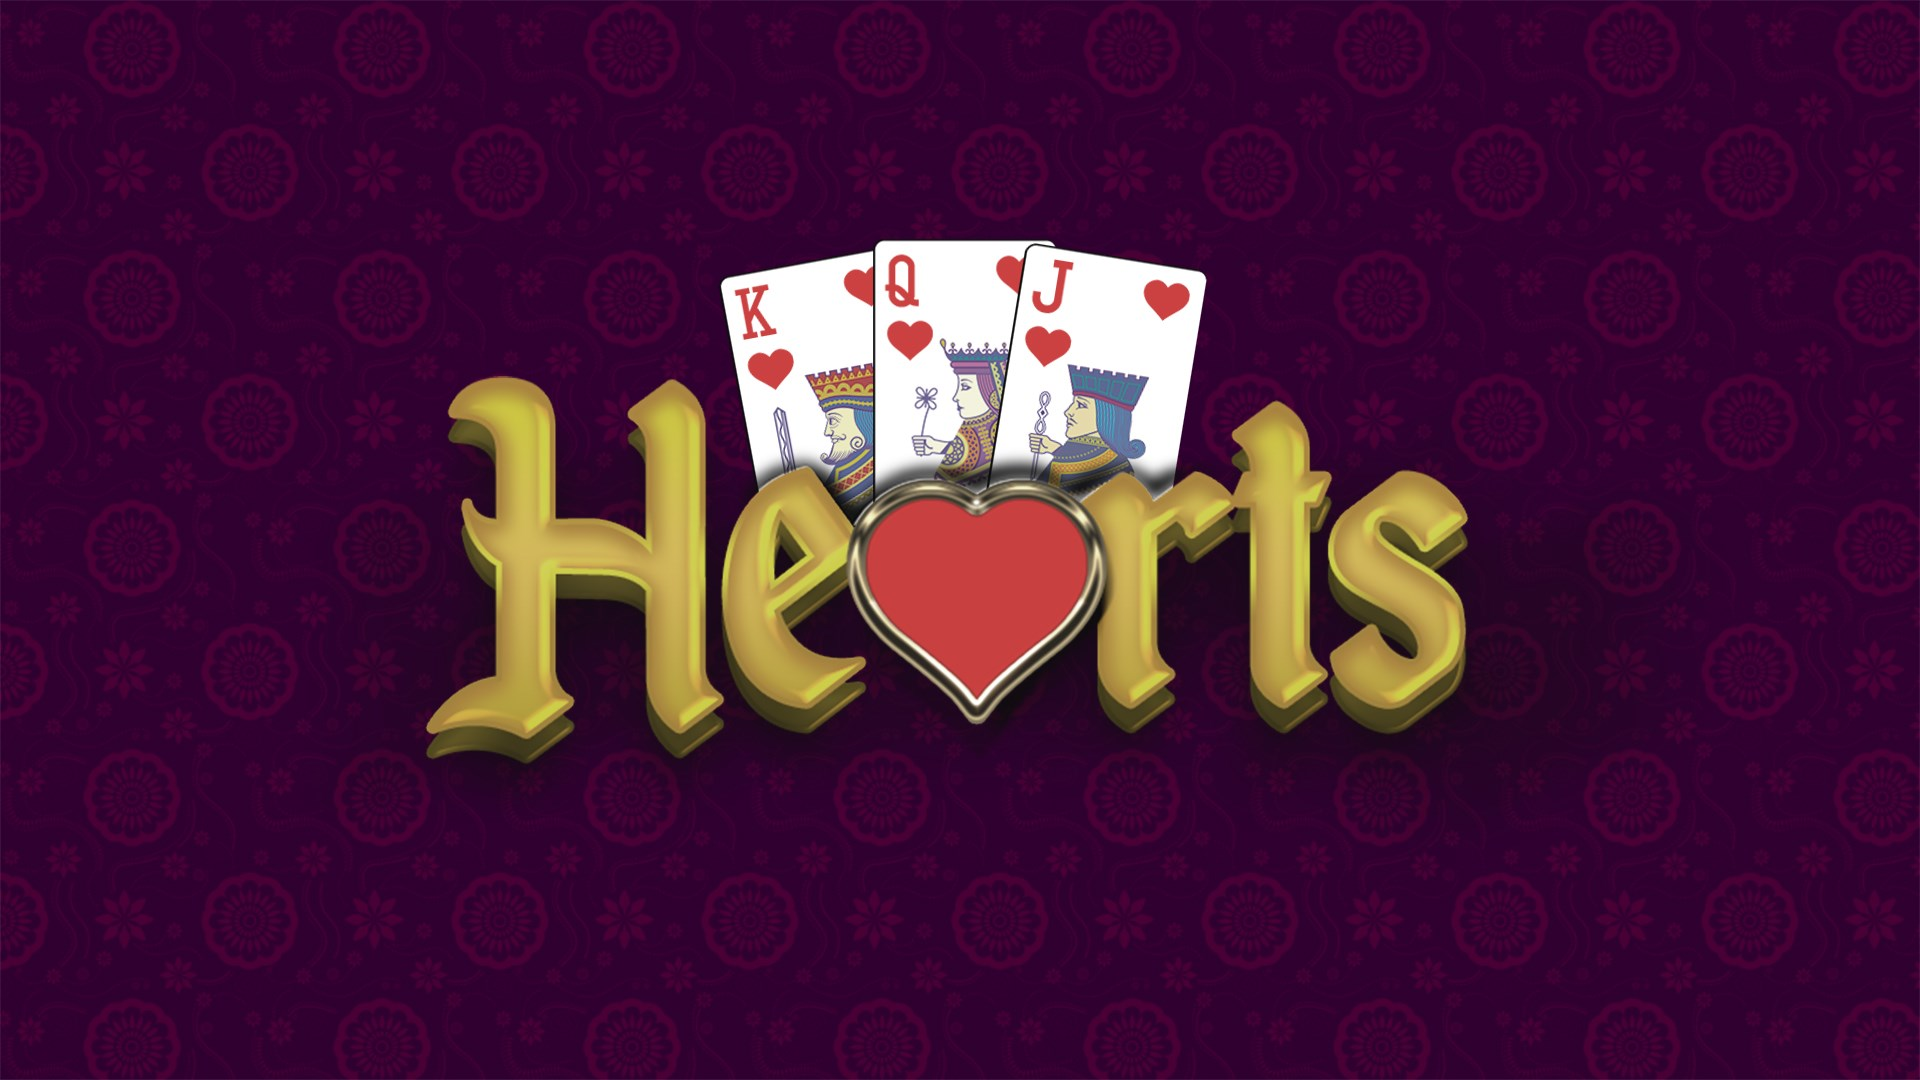 Games Hearts